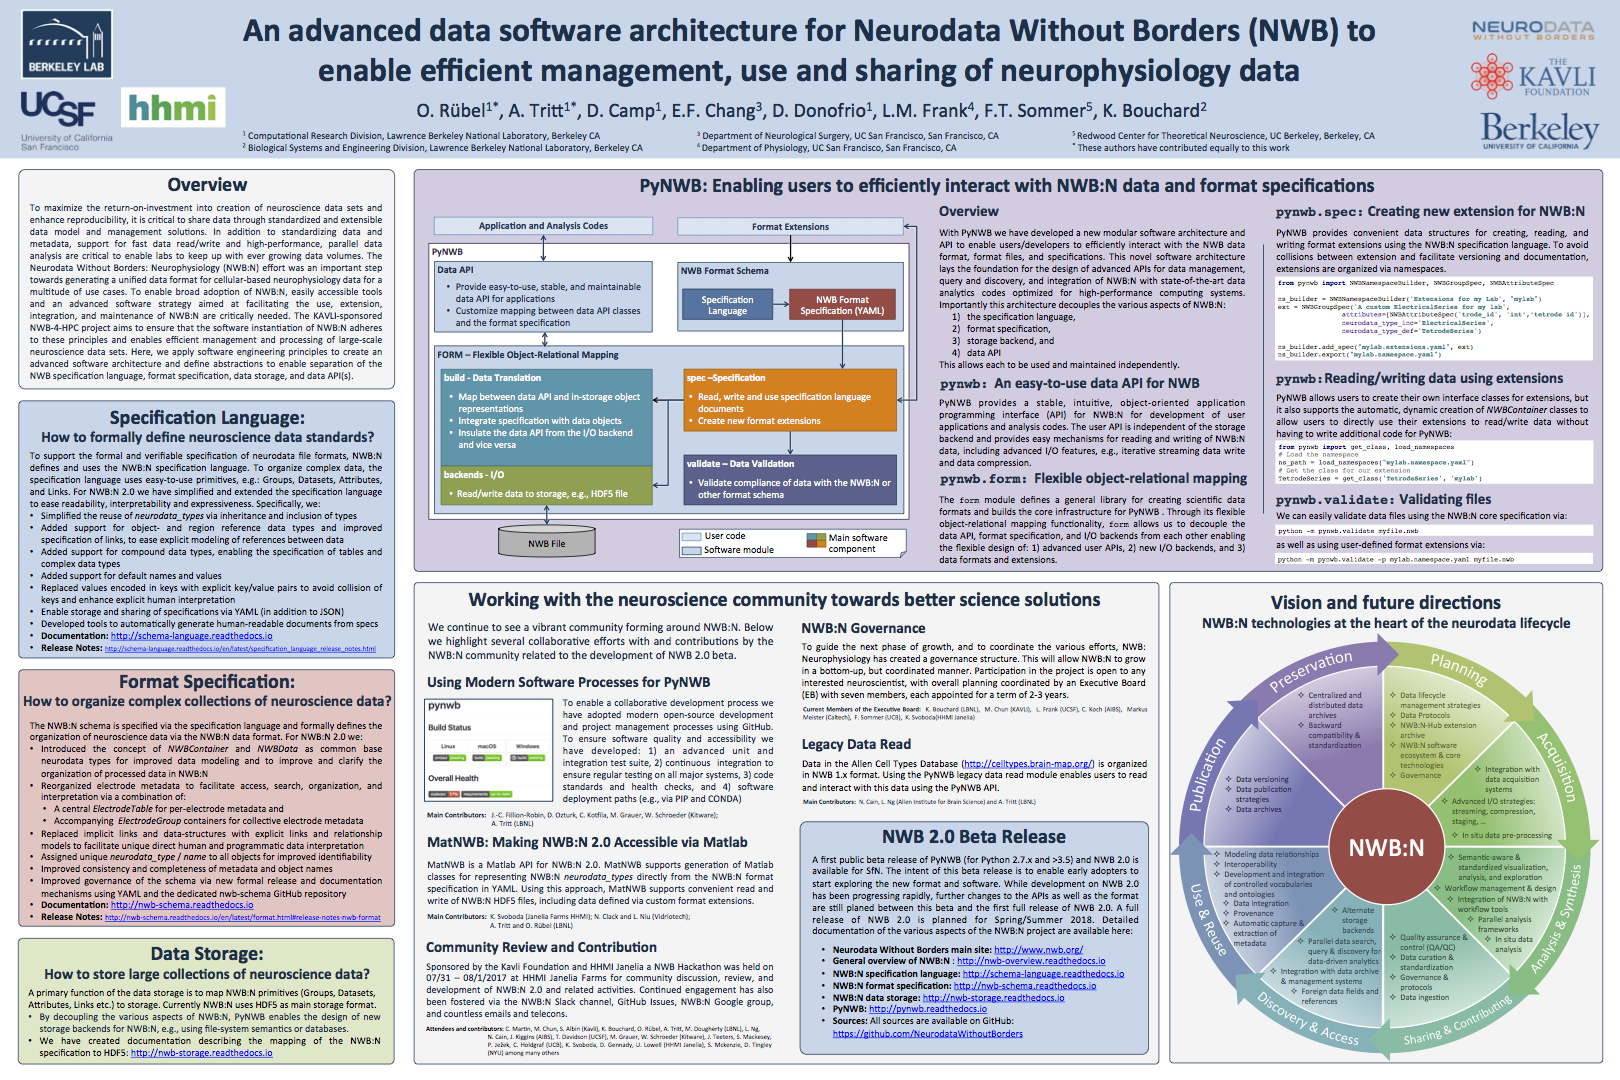 NWB:N -- Beta of Neurodata Without Borders 2.0 Format and Software Released